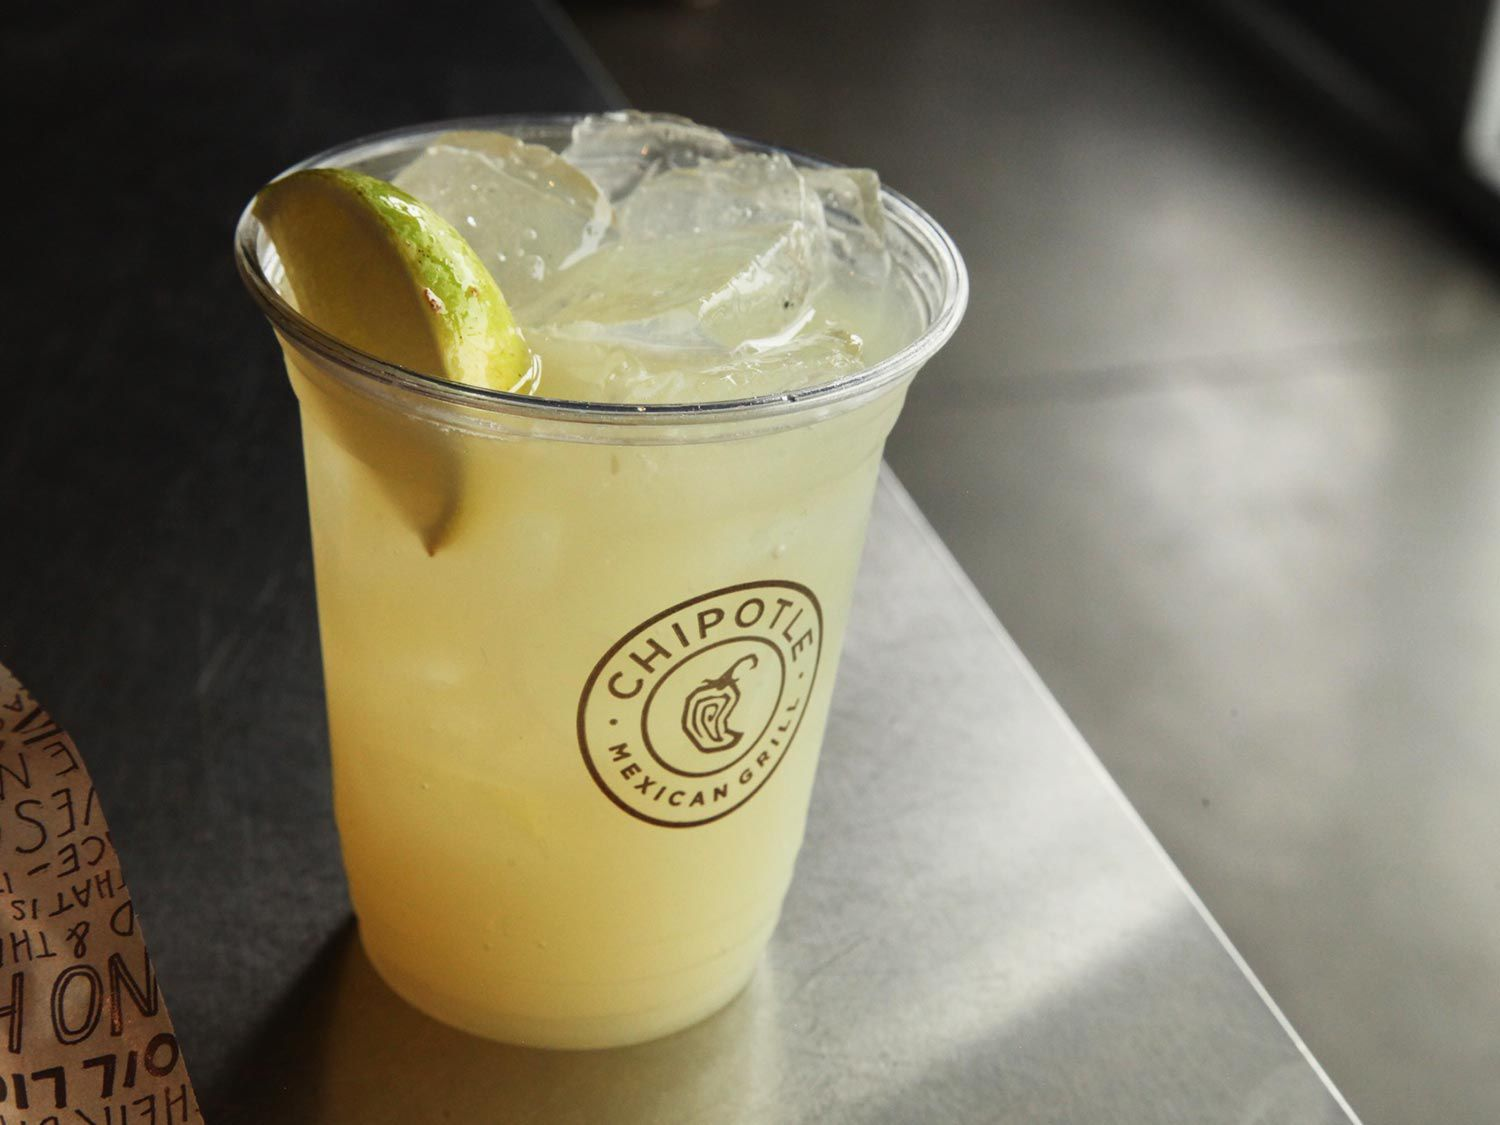 A margarita from Chipotle with a lime wedge in the cup